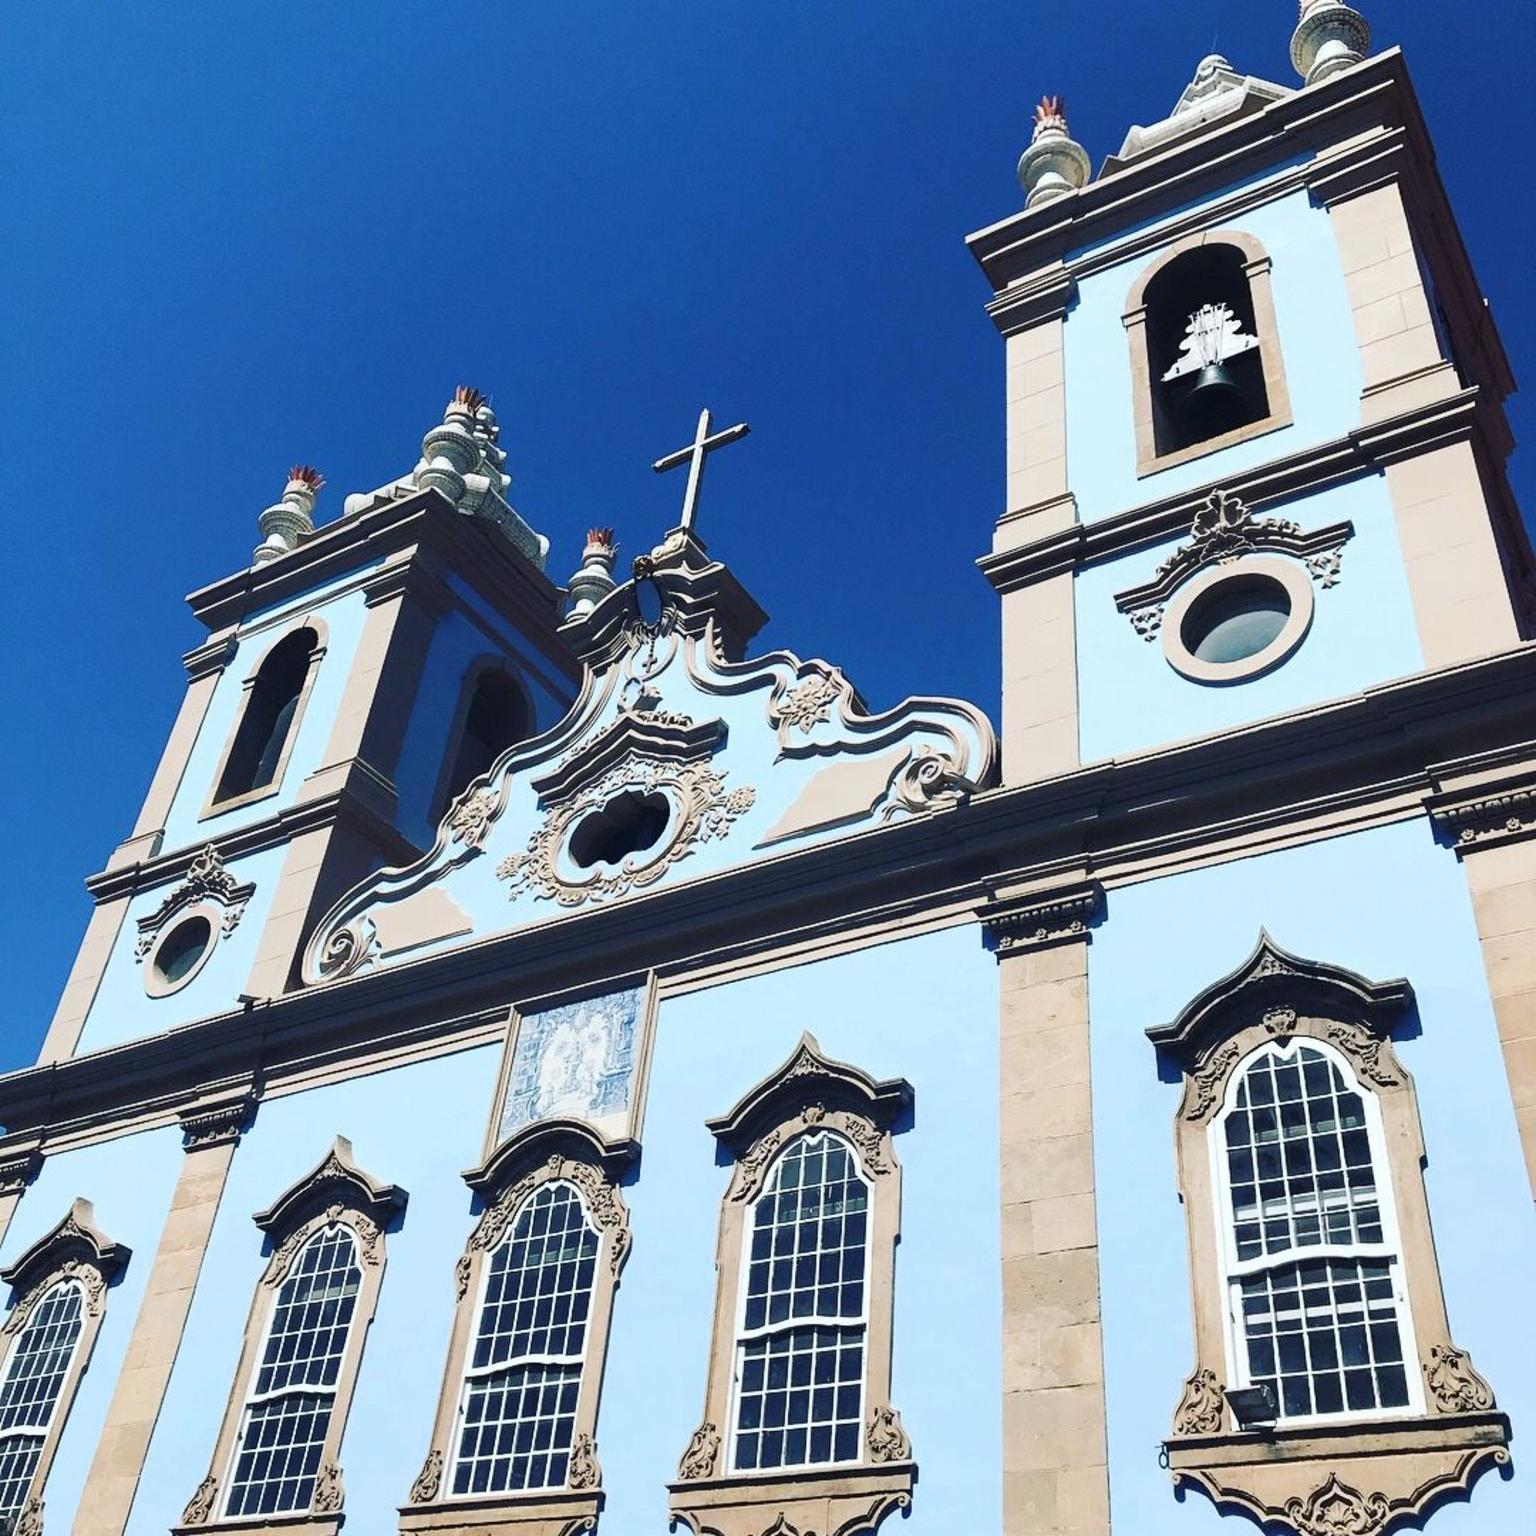 Salvador African Heritage Private City Tour Including Afro-Brazilian Museum